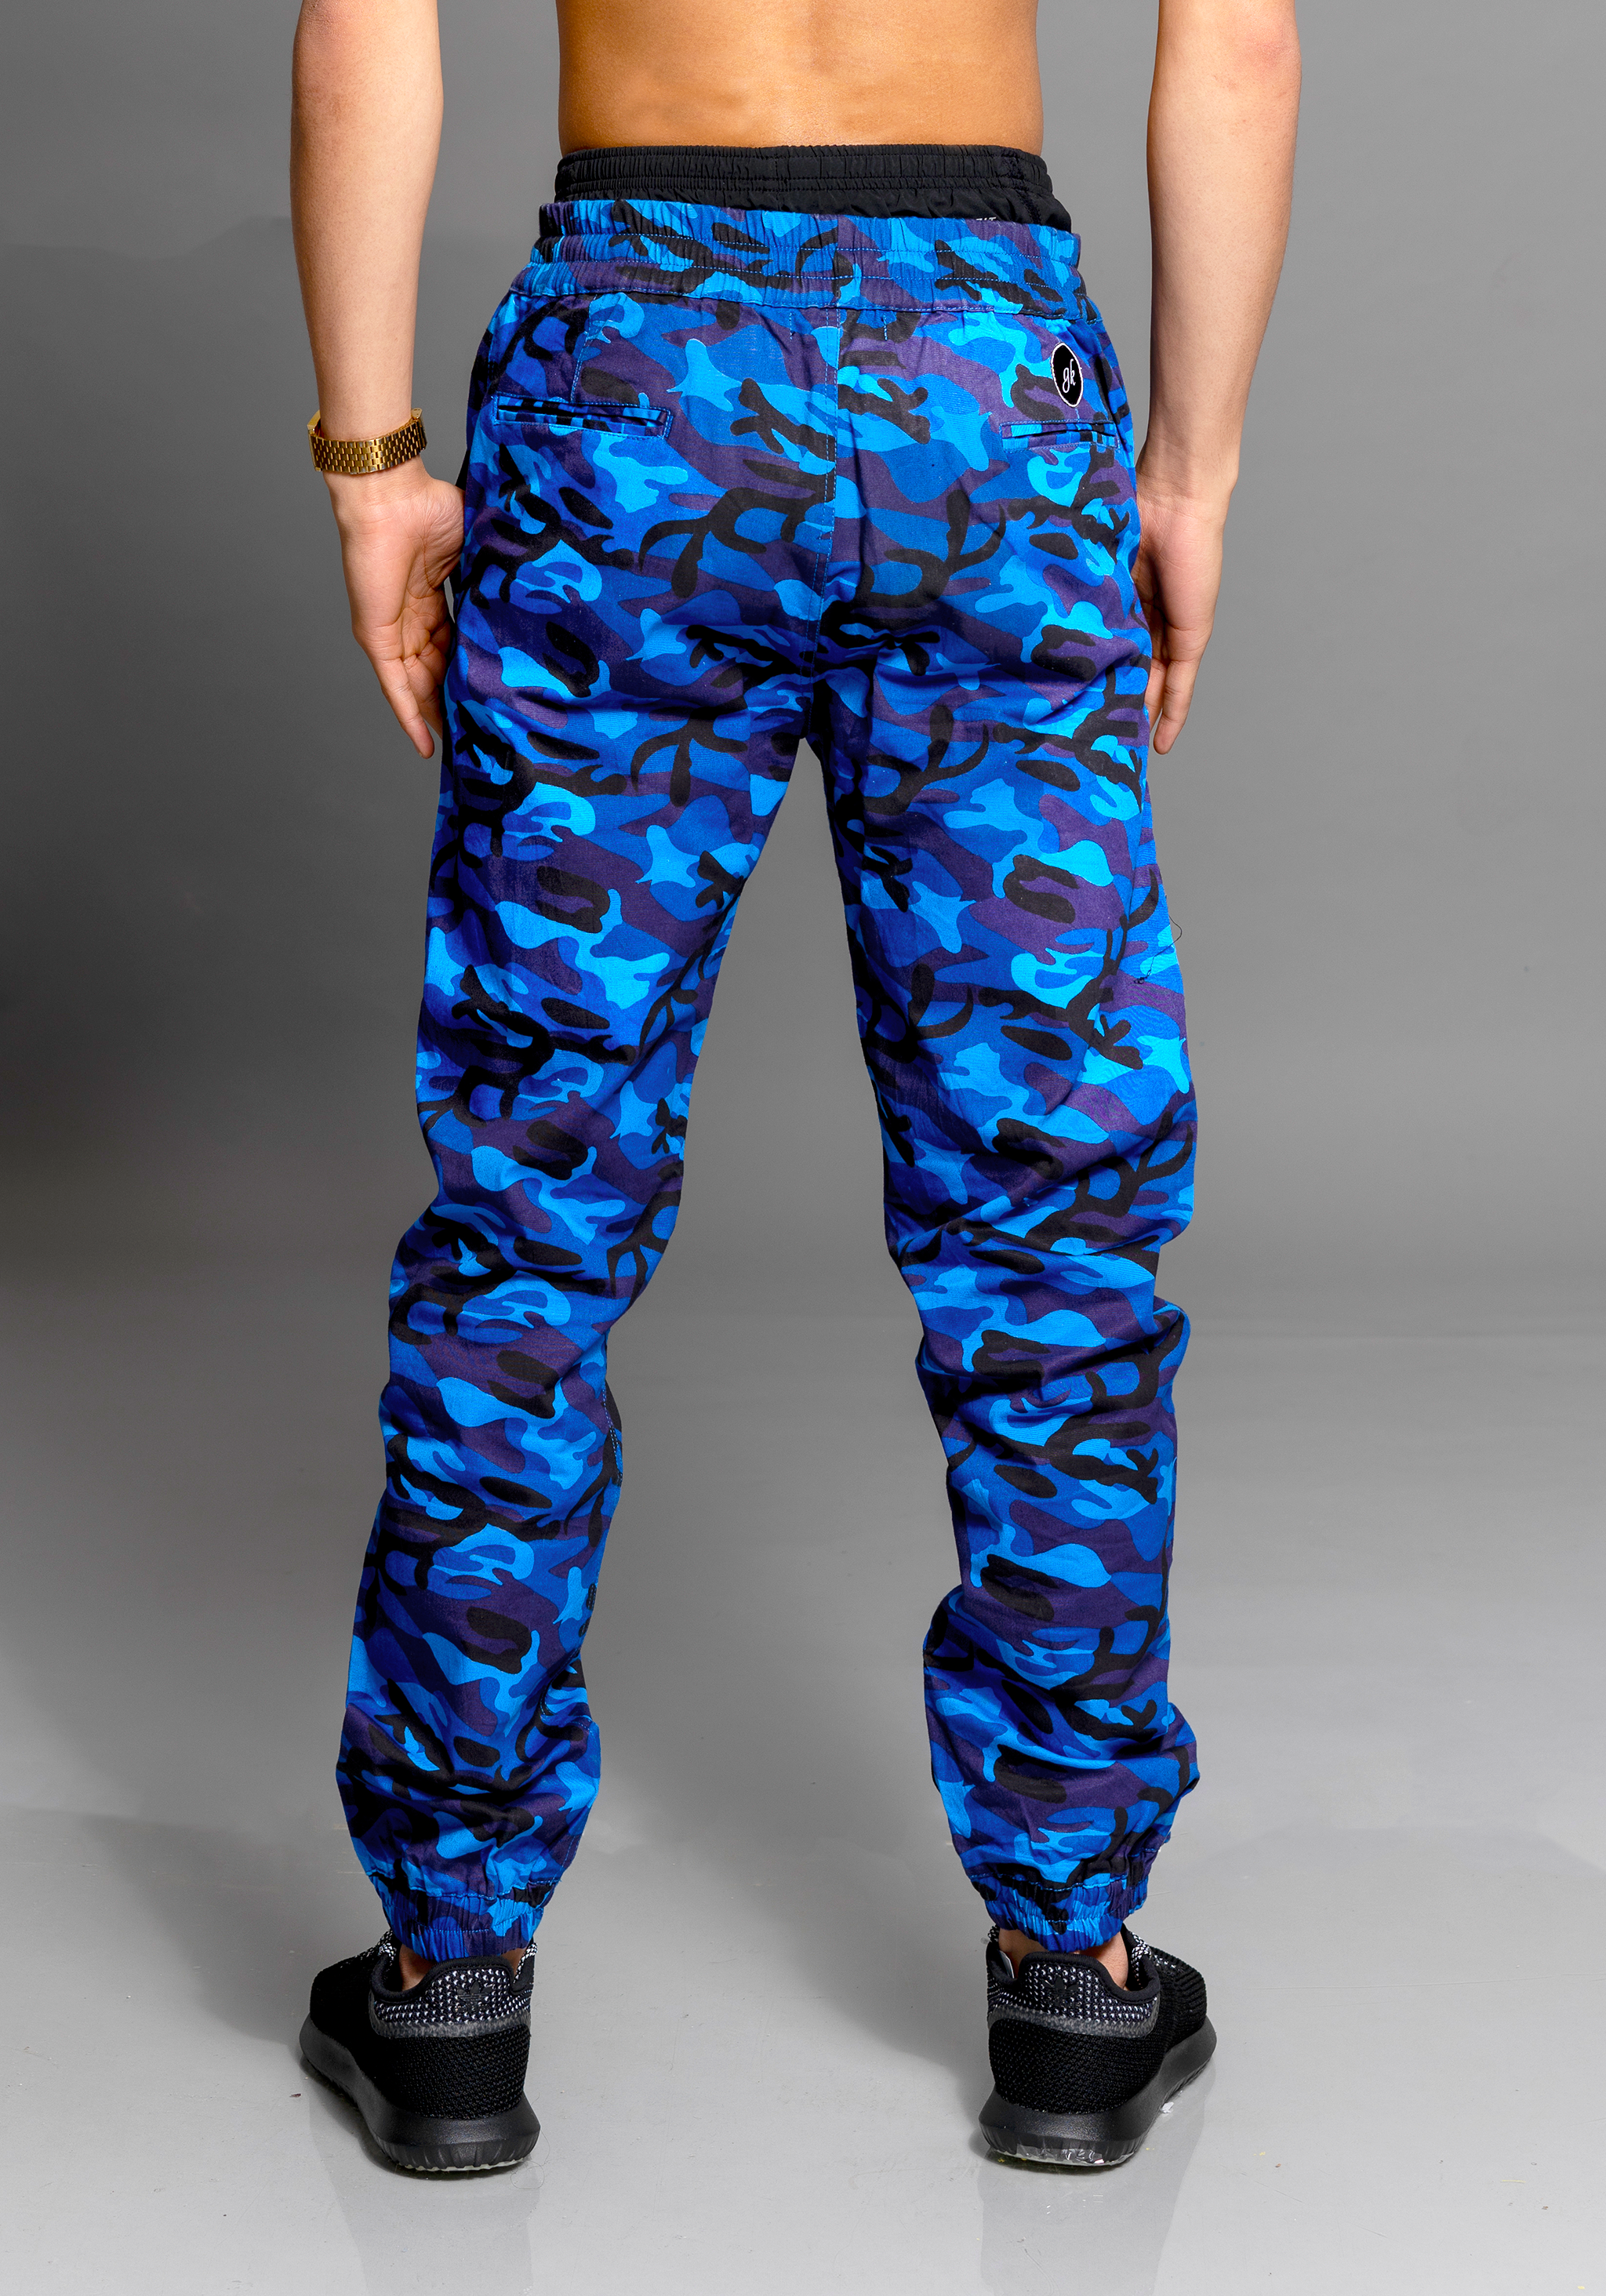 GK CHAMILLION BLUE ARMY JOGGER PANTS